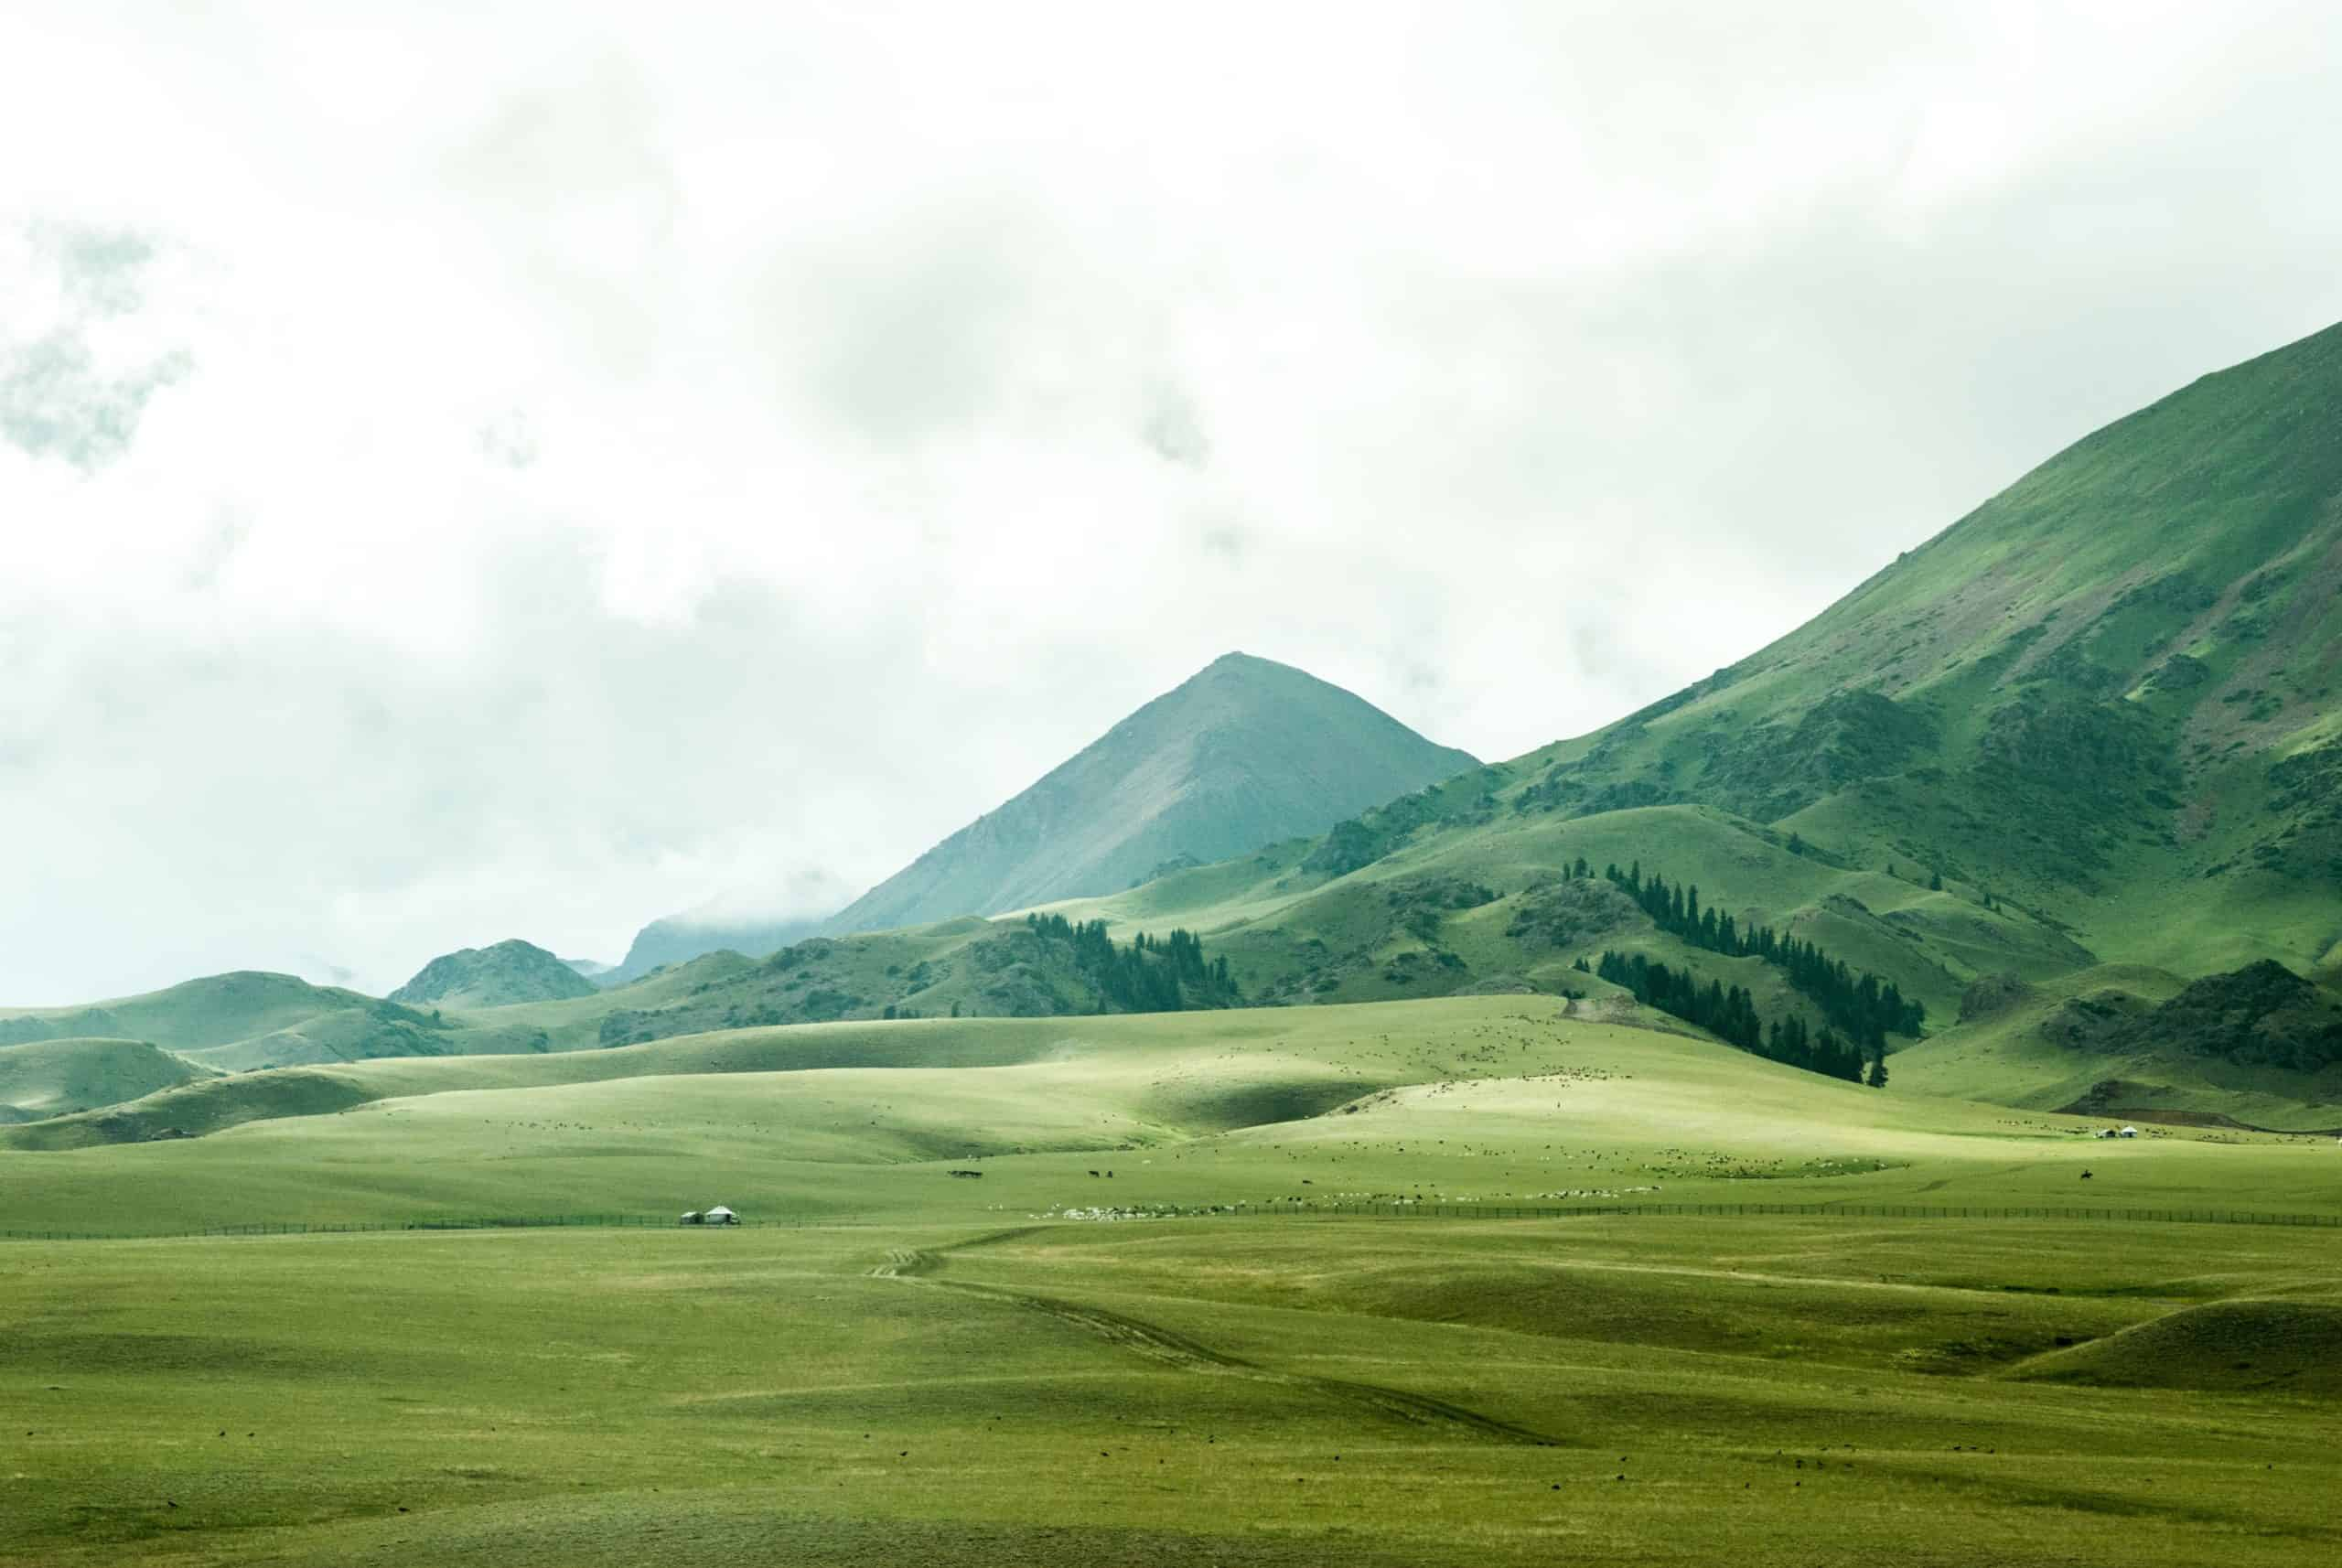 A large green field with a mountain in the background